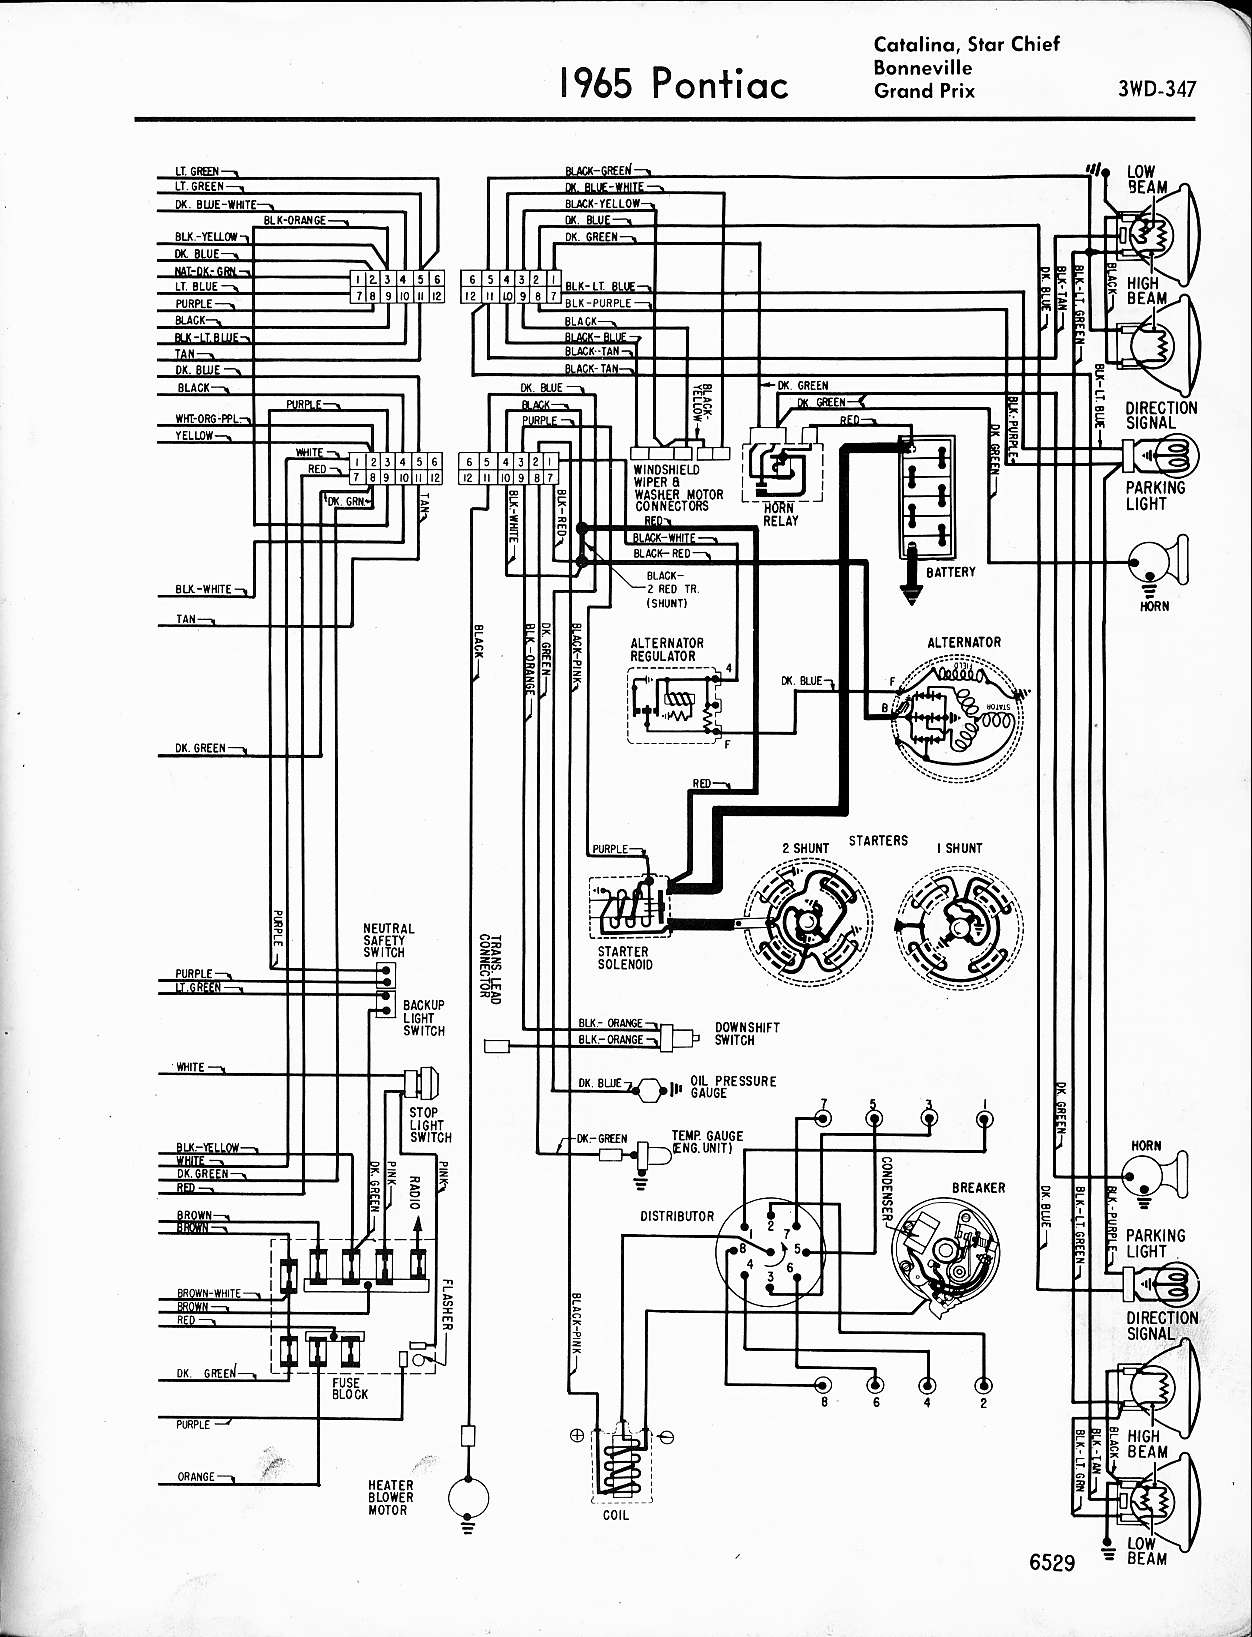 Wiring Diagram For Pontiac Bonneville Opinions About John Deere 270 Alternator 1957 1965 Rh Oldcarmanualproject Com Radio 2003